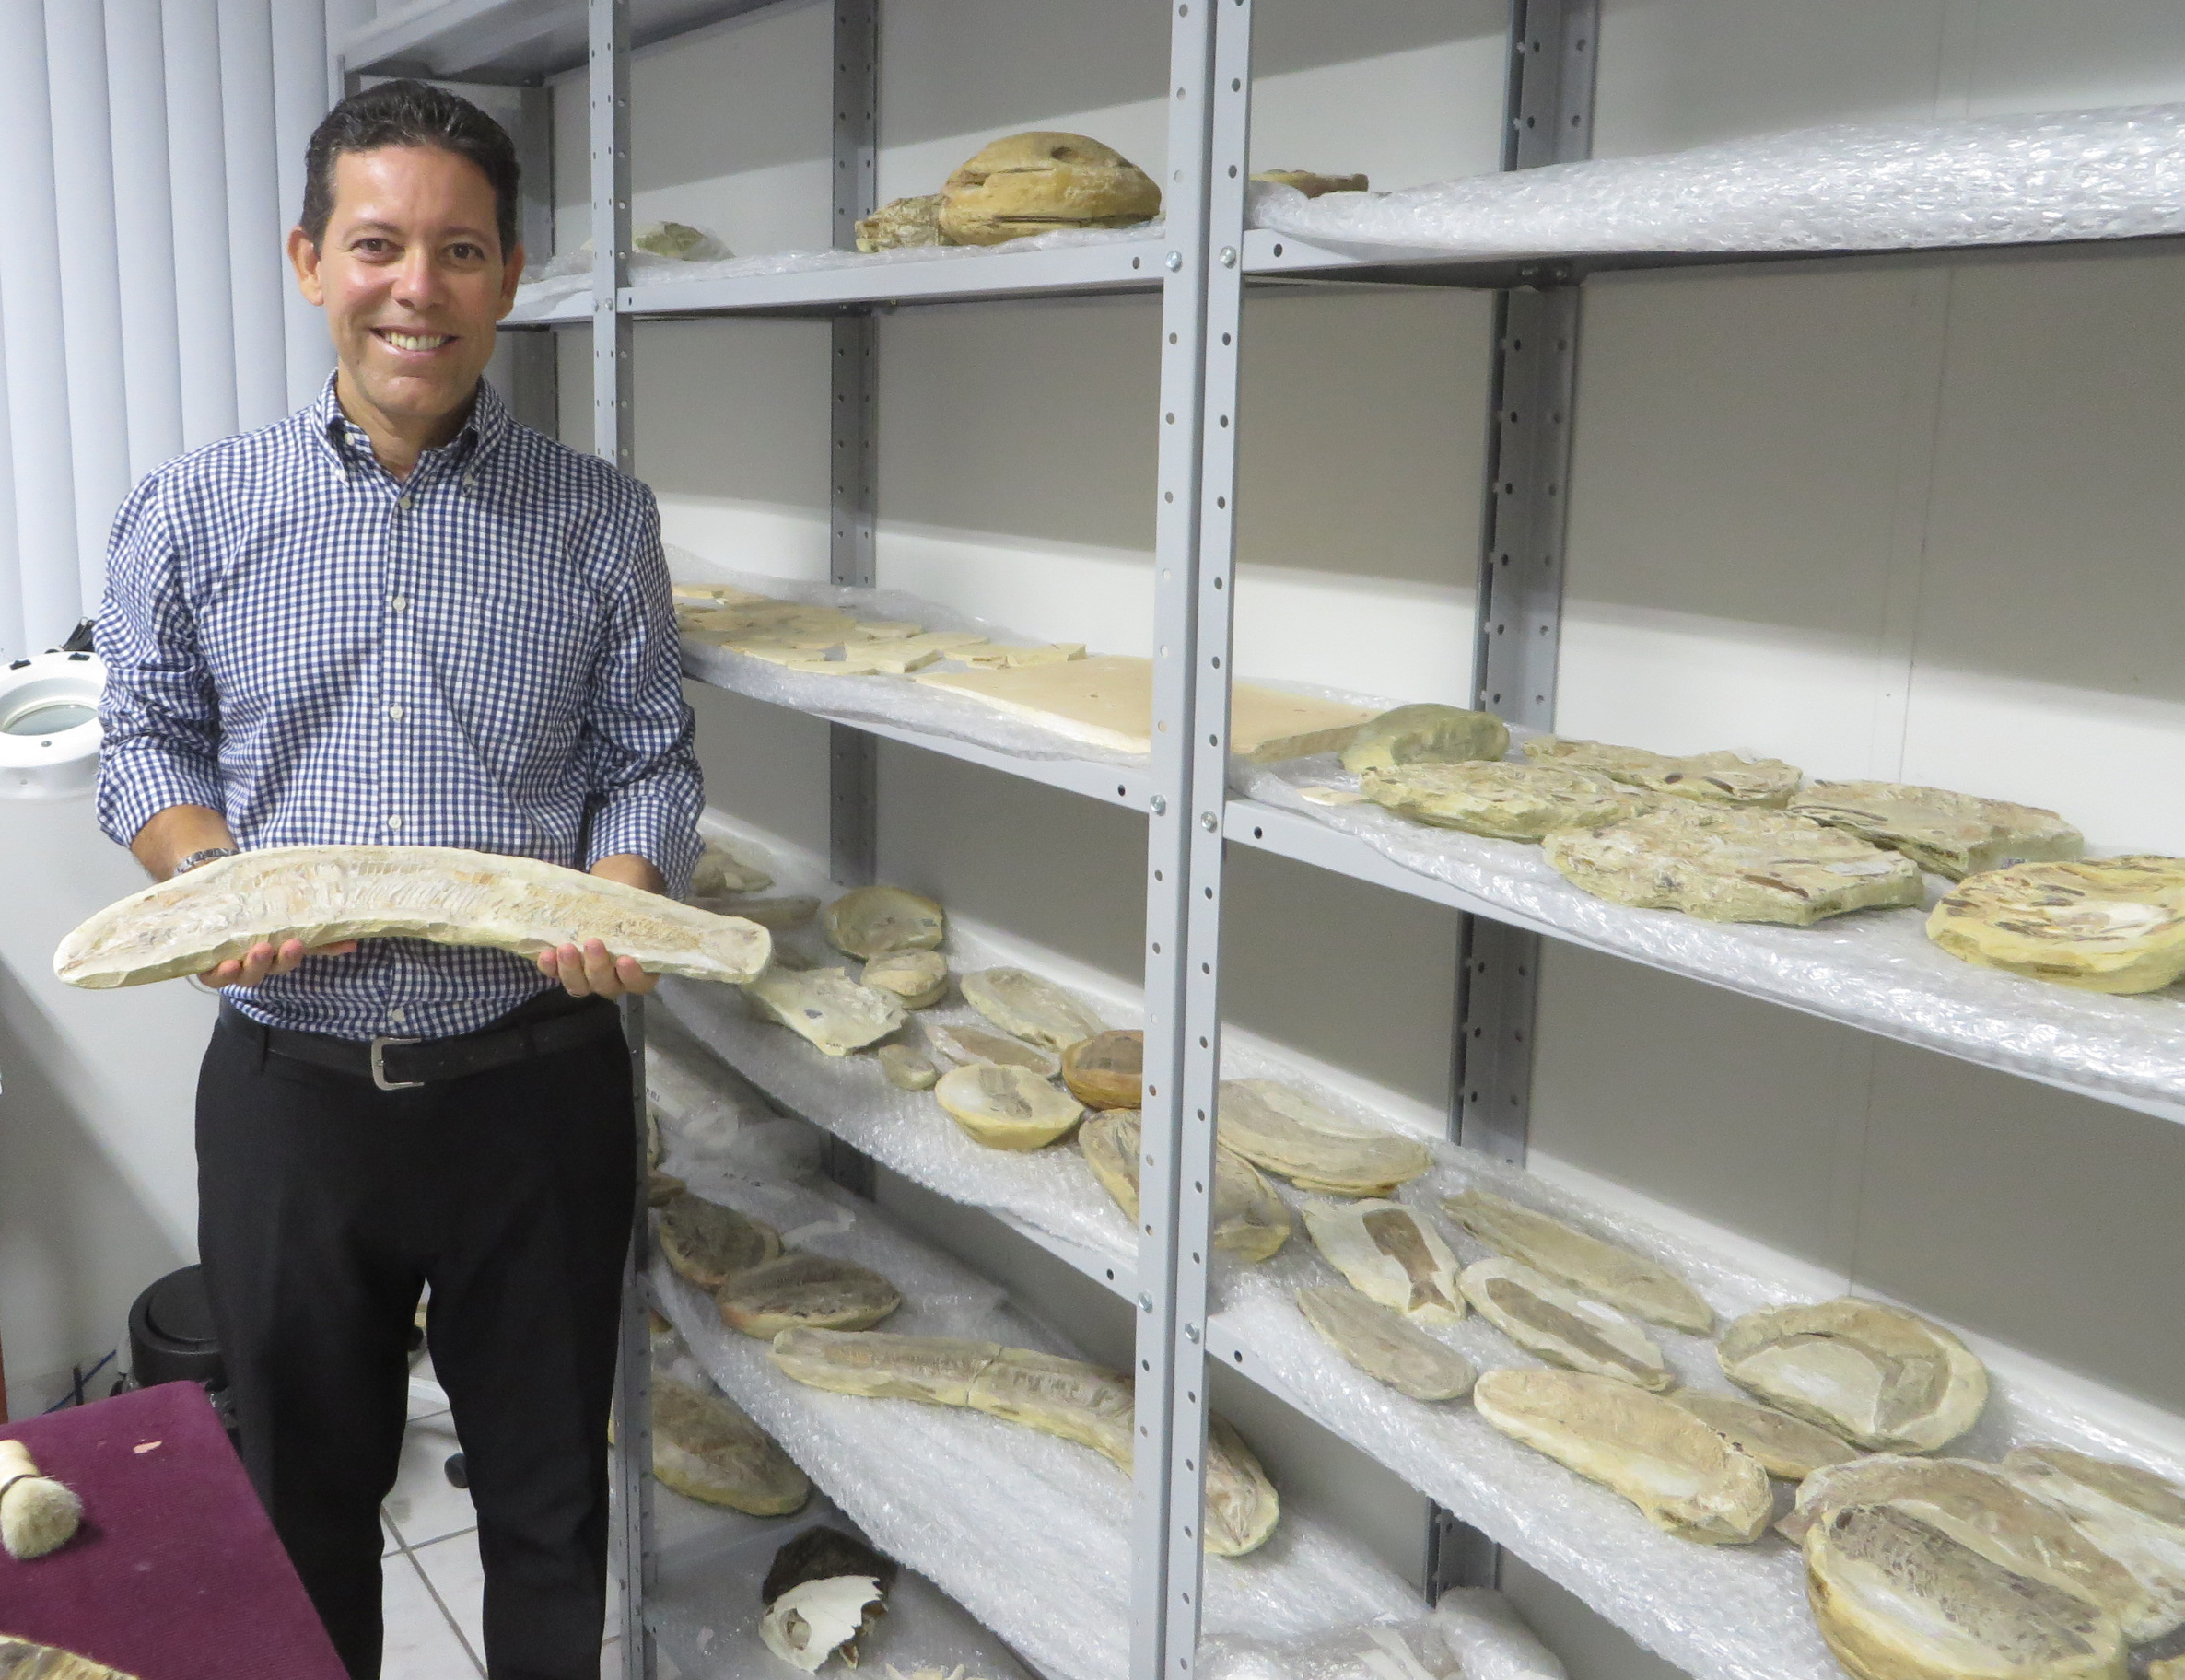 Dr. Silva shows some of the Santana Formation fossil fish stored in the preparation room of the Center.